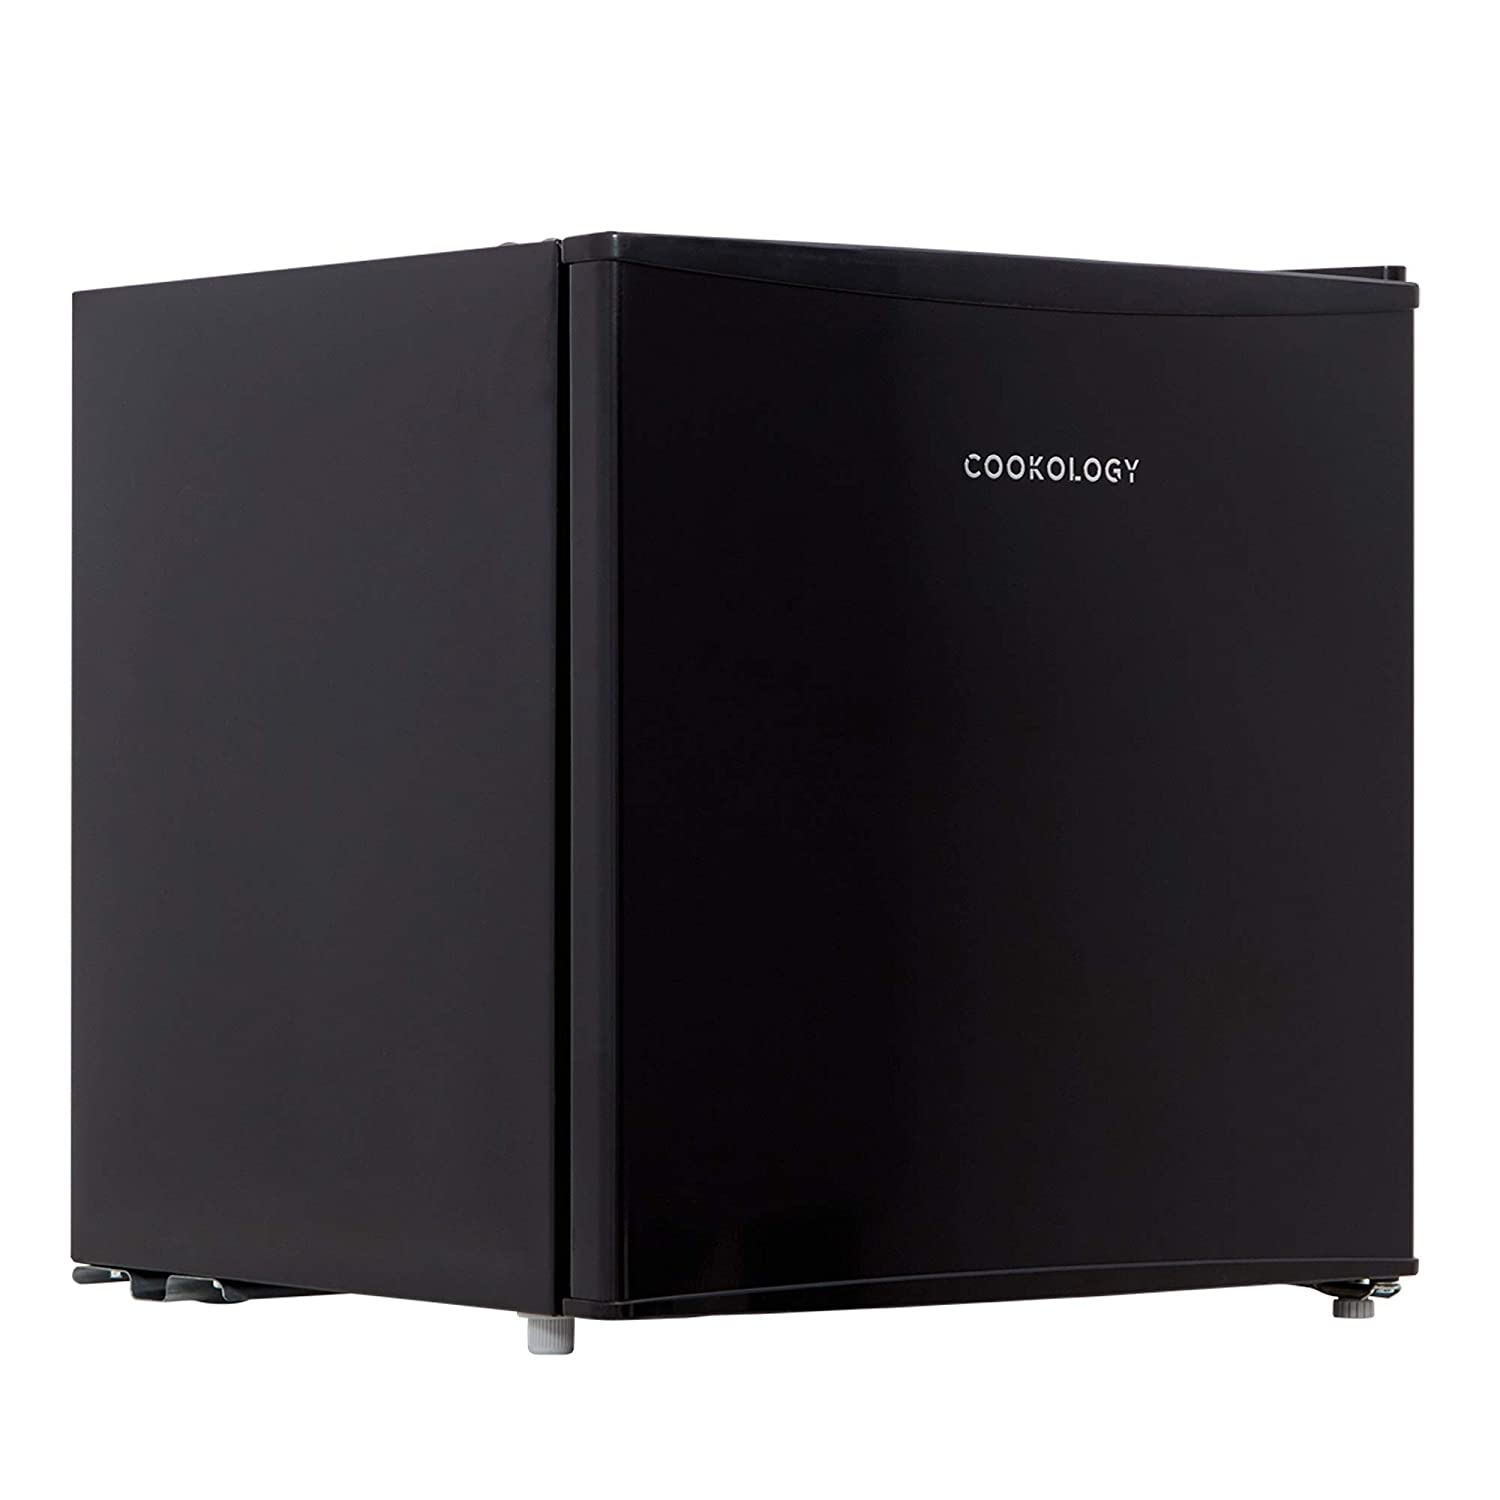 Cookology 4 Star **** Black Table Top Mini Freezer 32 Litre